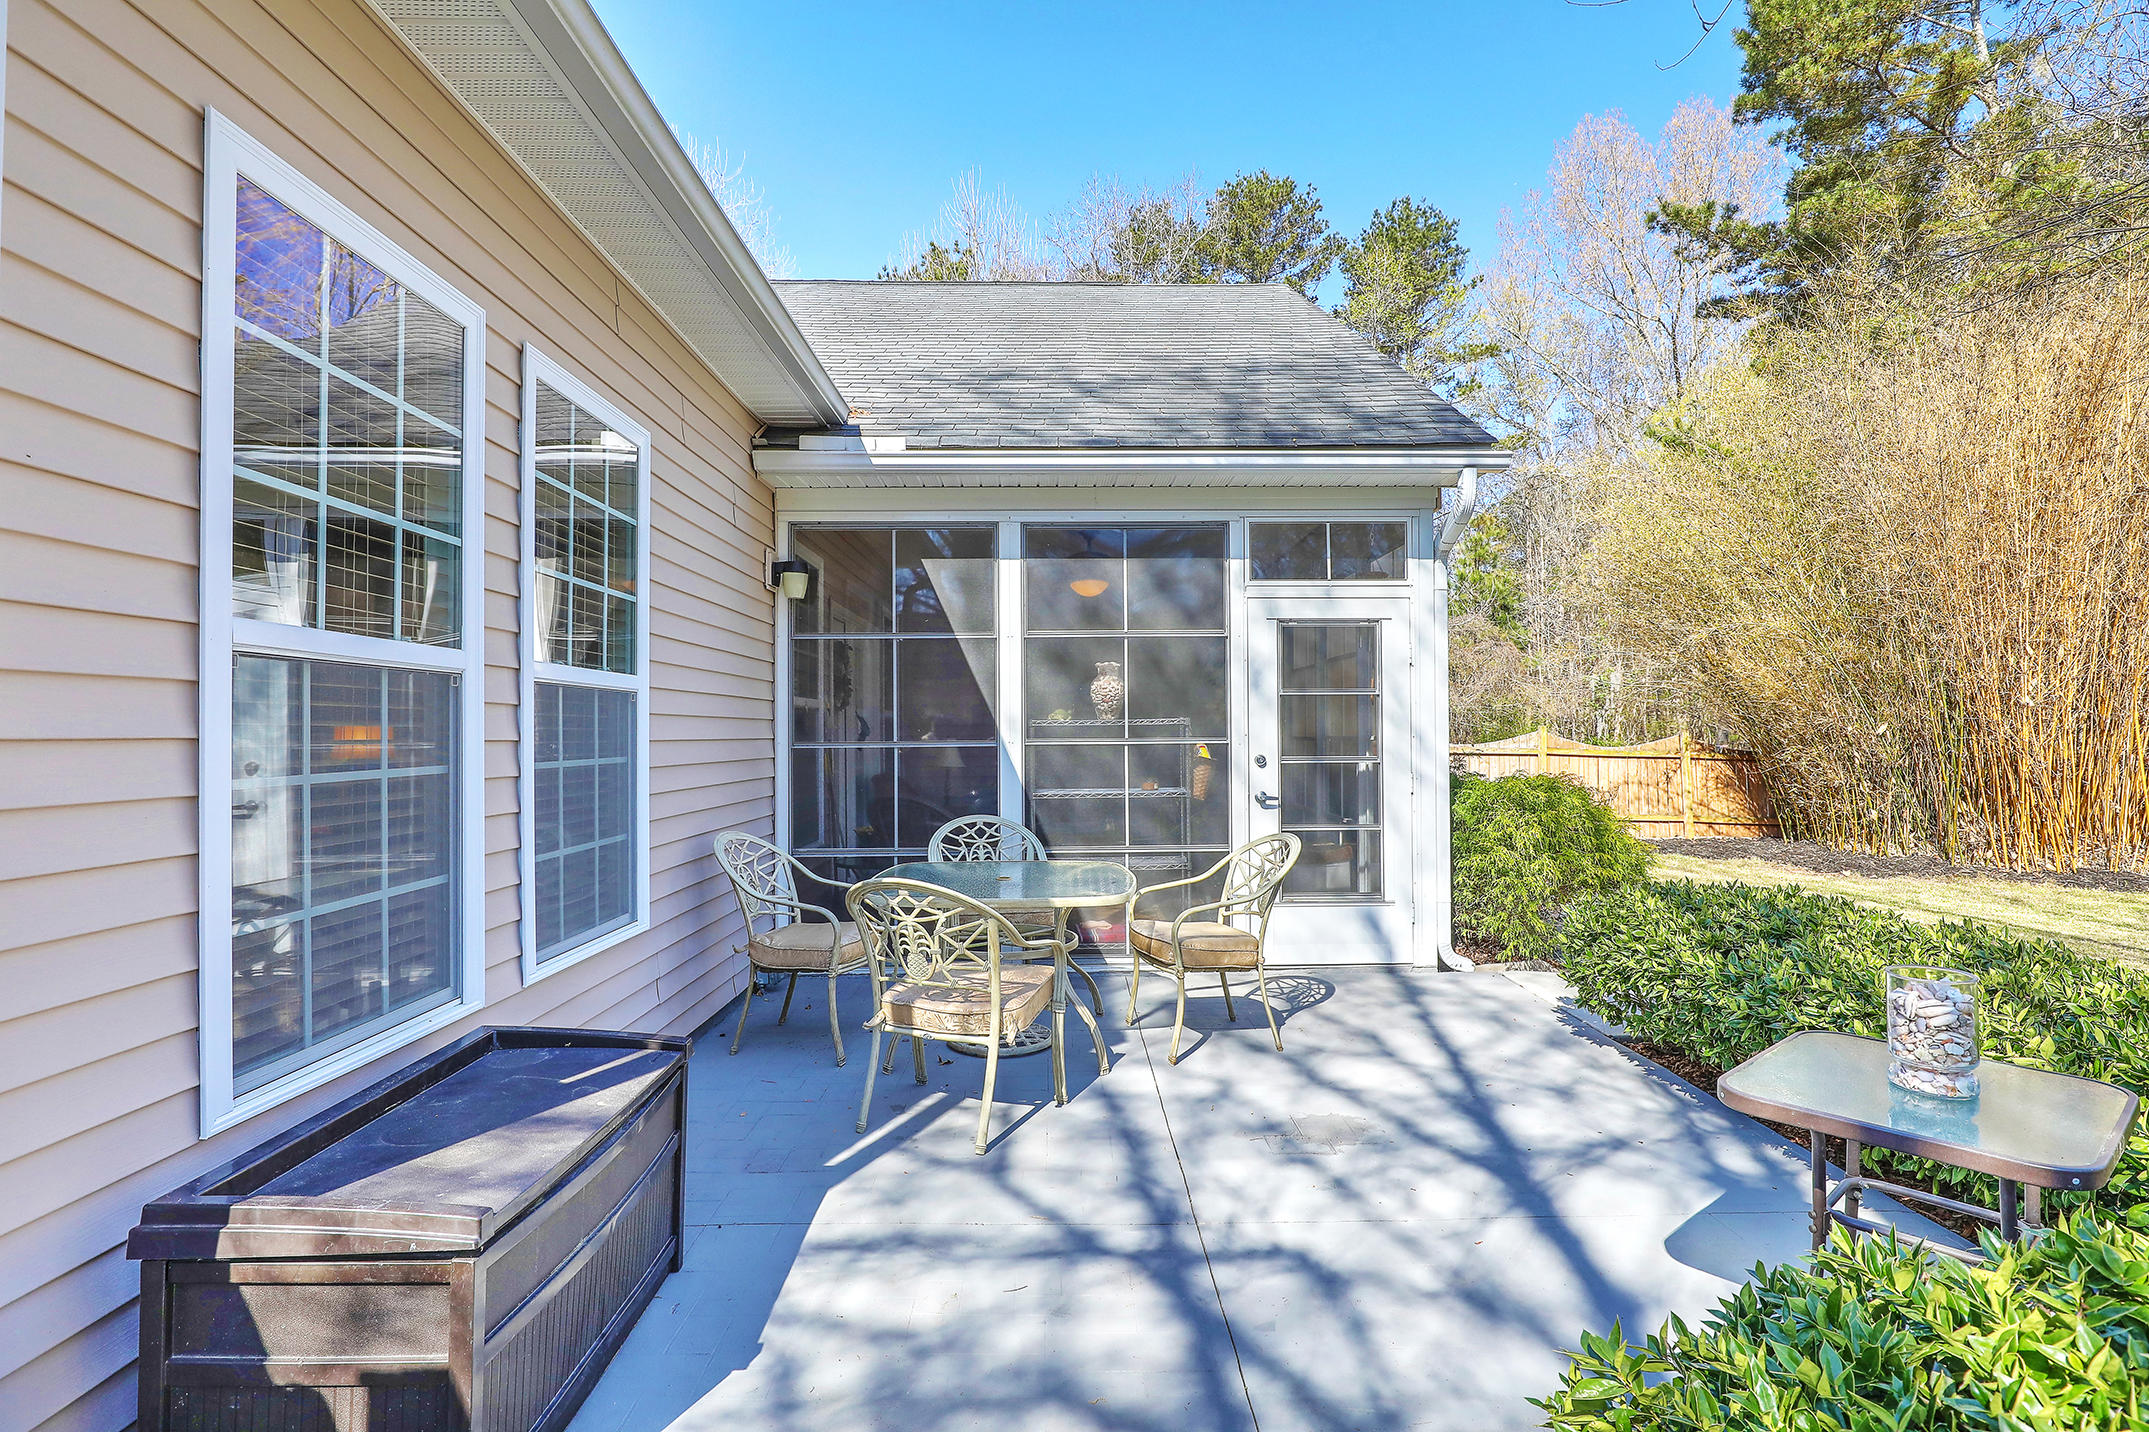 Photo of 106 High Bridge Rd, Summerville, SC 29485